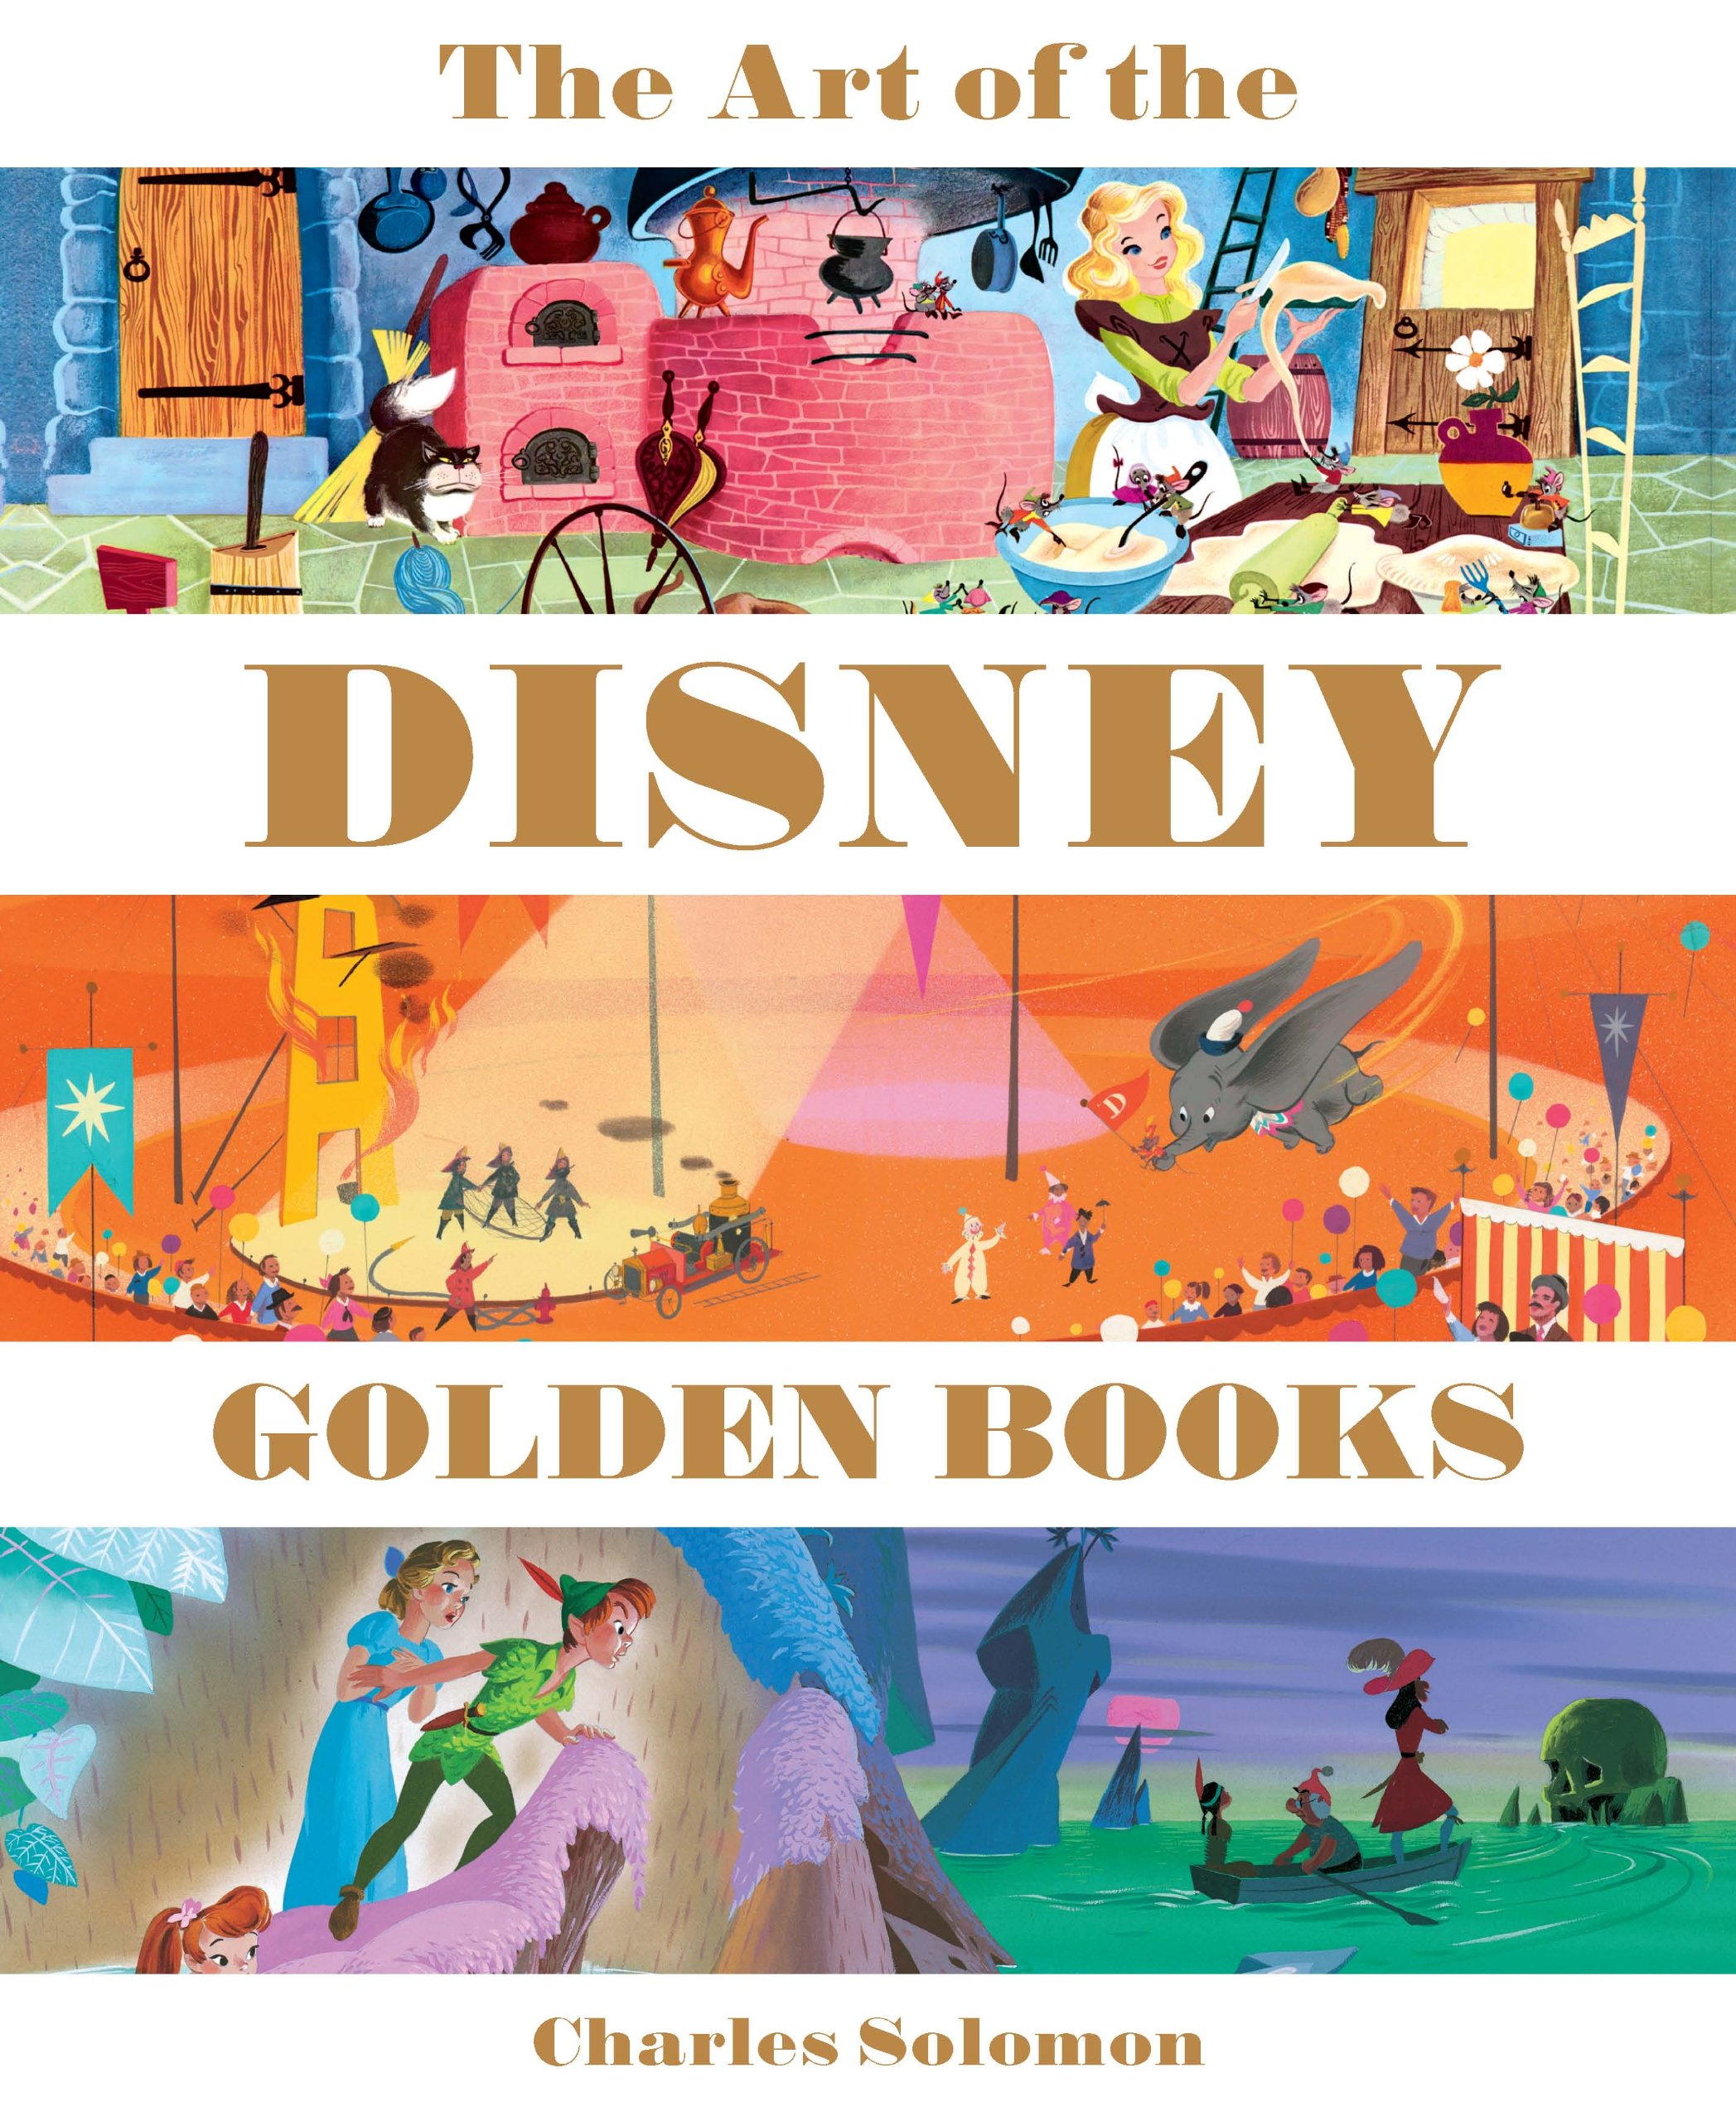 The Art of the Disney Golden Books by Charles Solomon